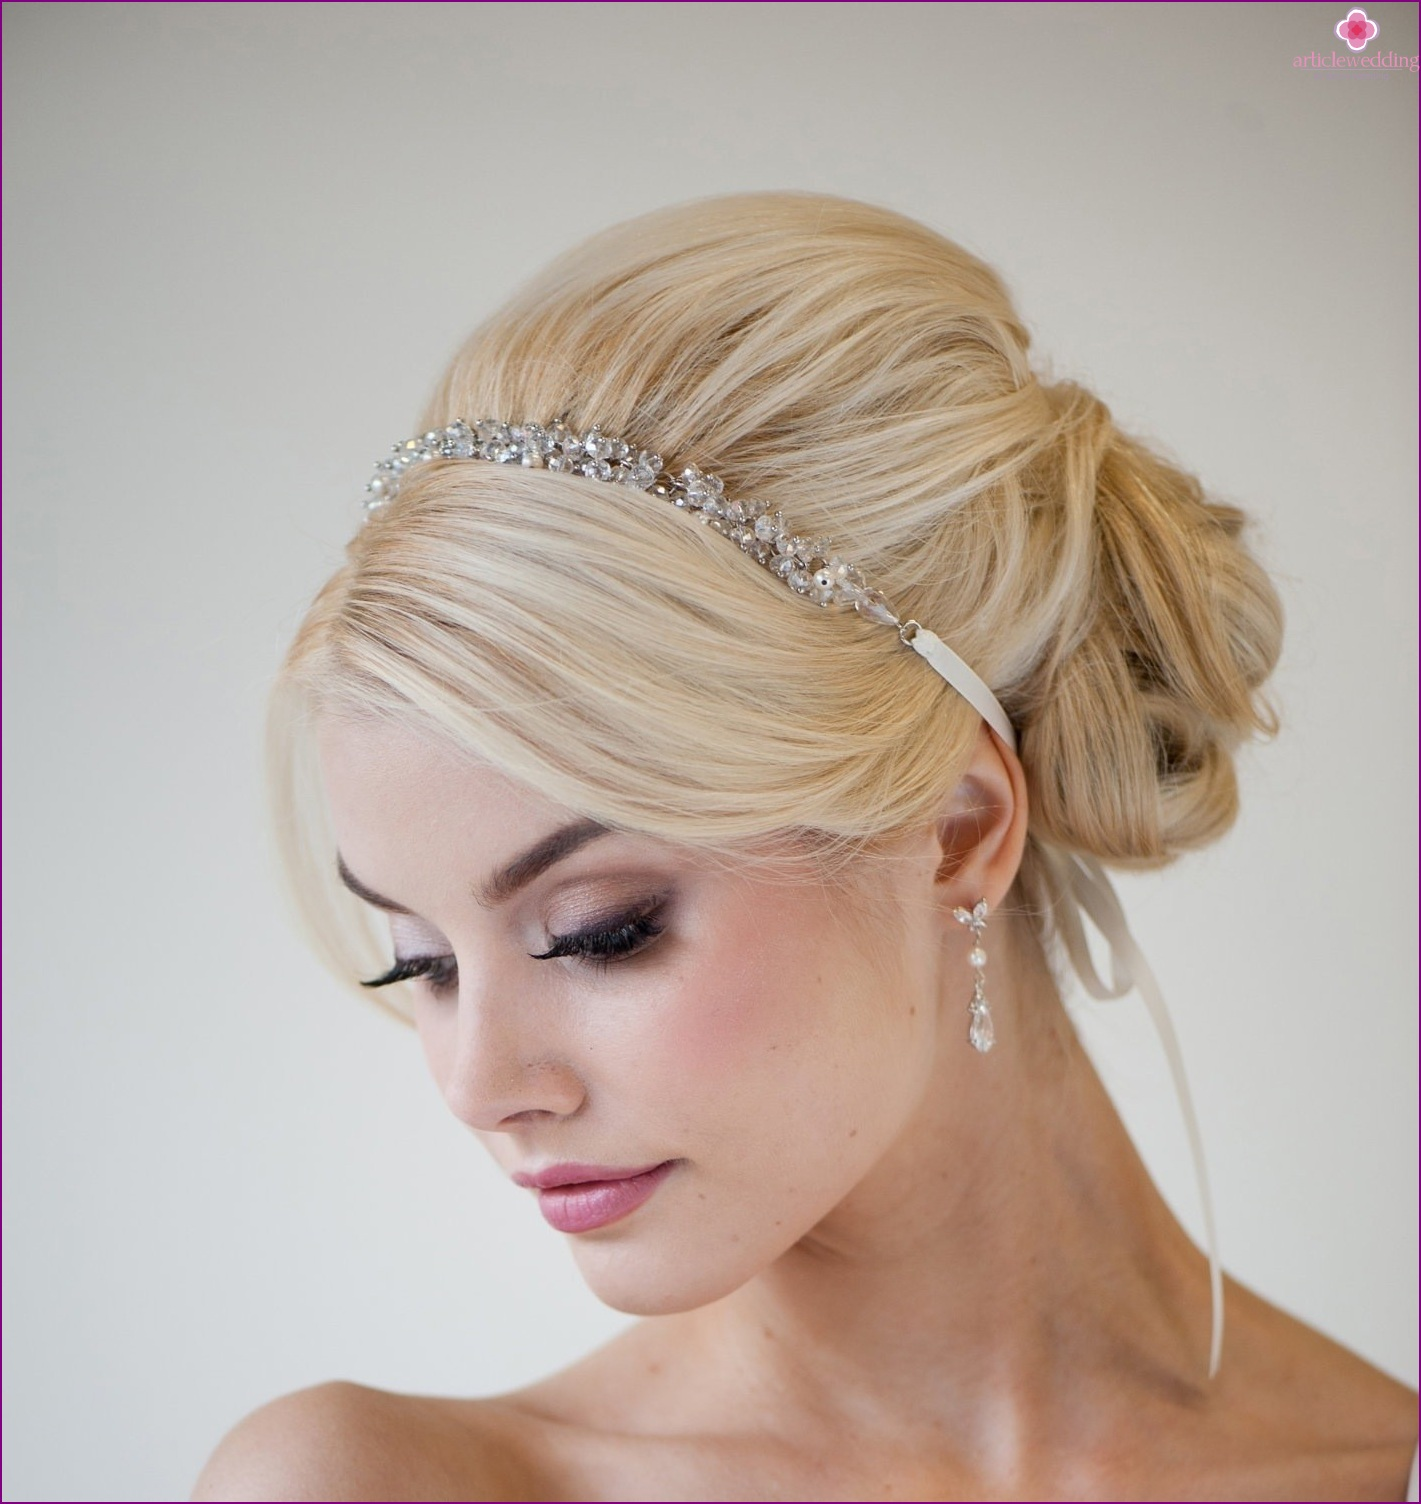 Ribbon decoration hairstyles